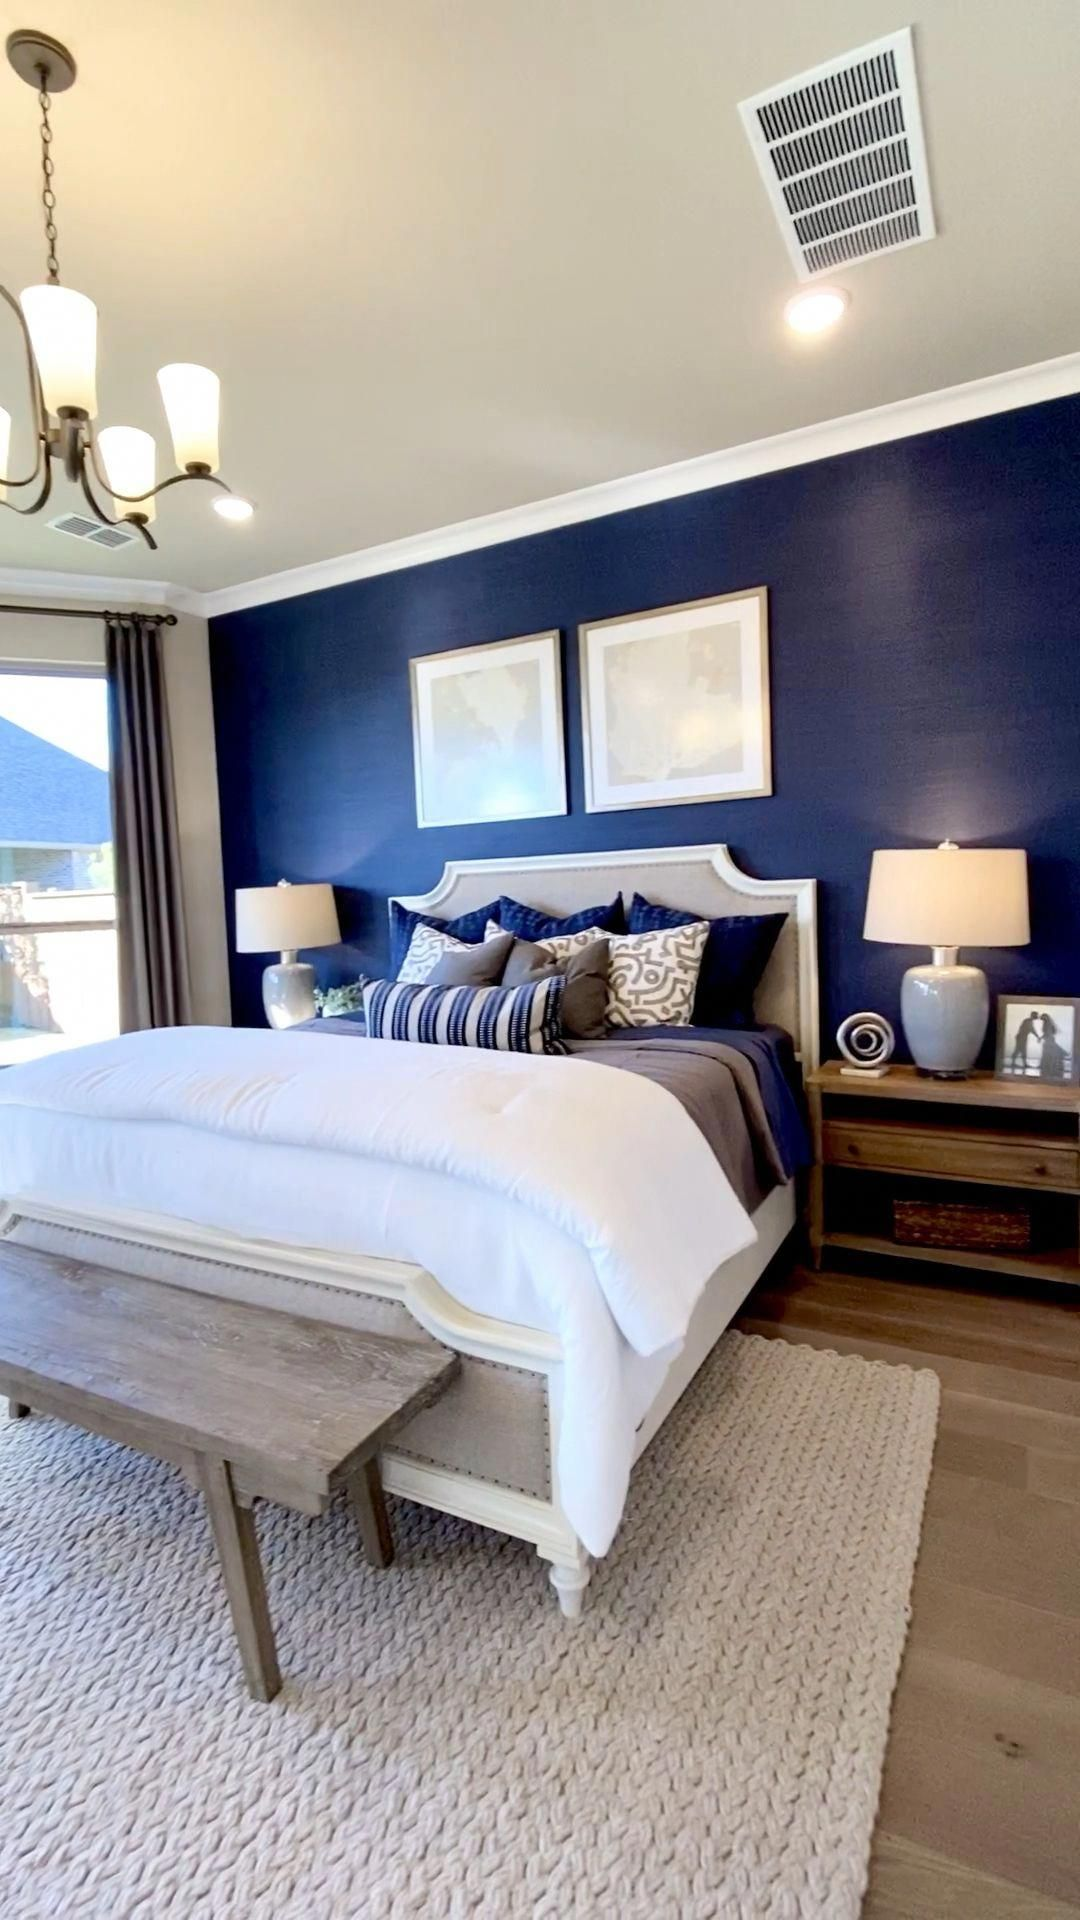 Master Bedroom Design With Royal Blue Accent Wall Behind The Bed